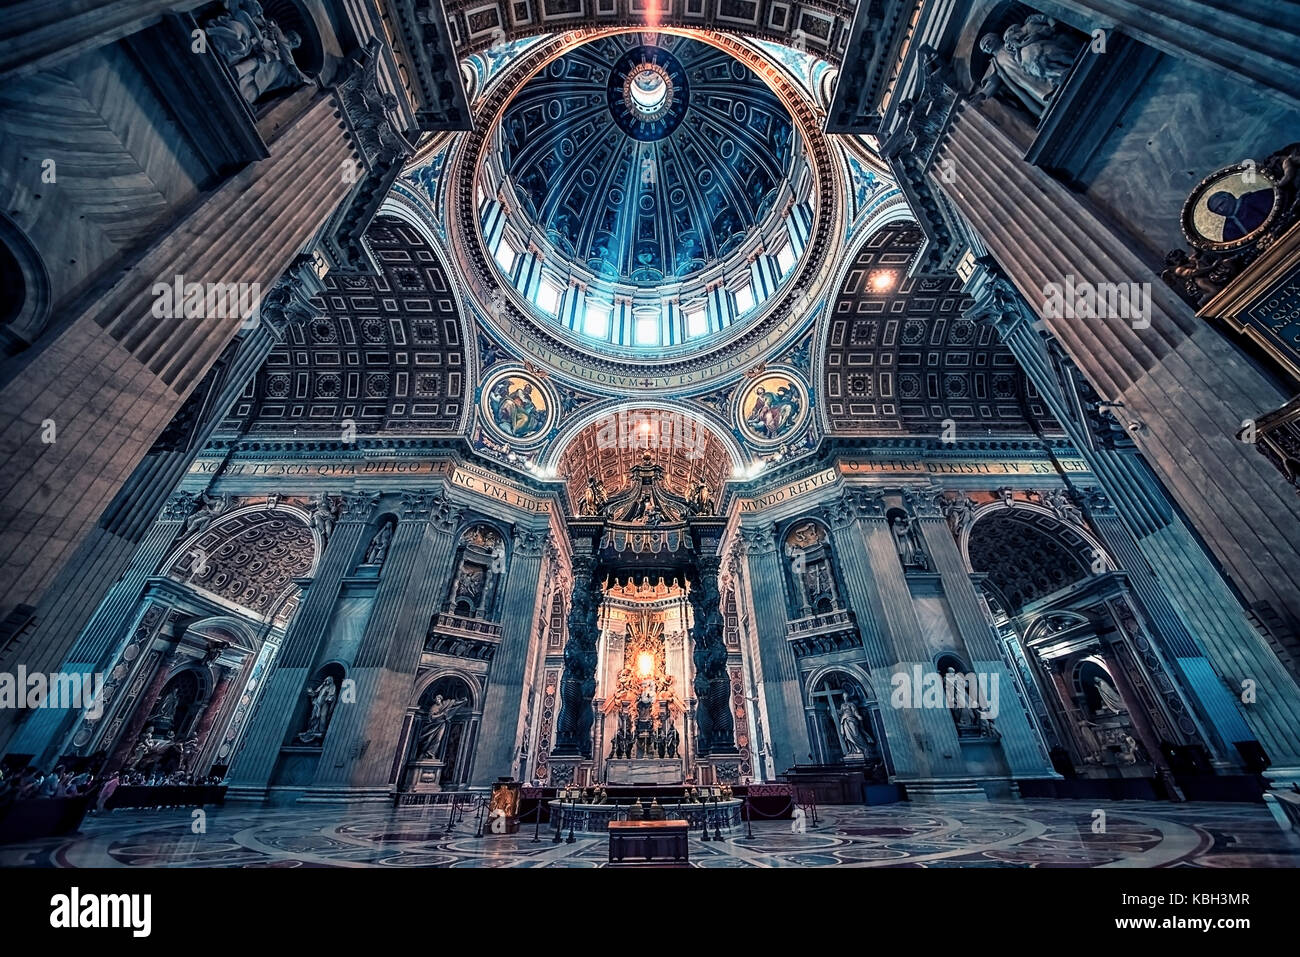 St Peter's basilica in Rome Stock Photo